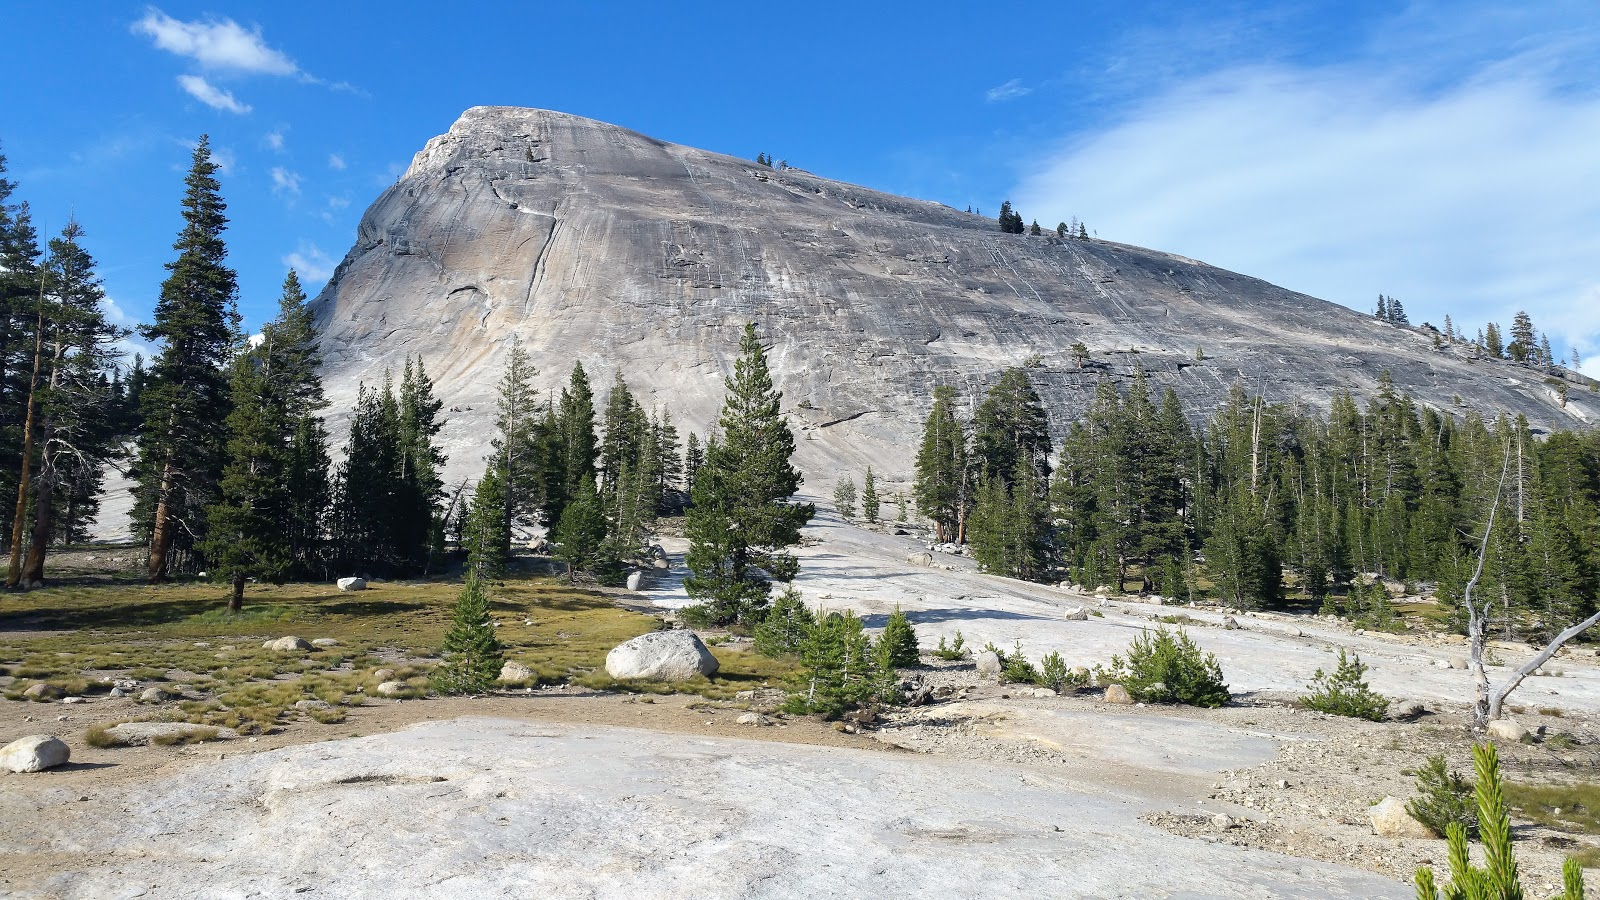 A massive Rock Dome in Yosemite